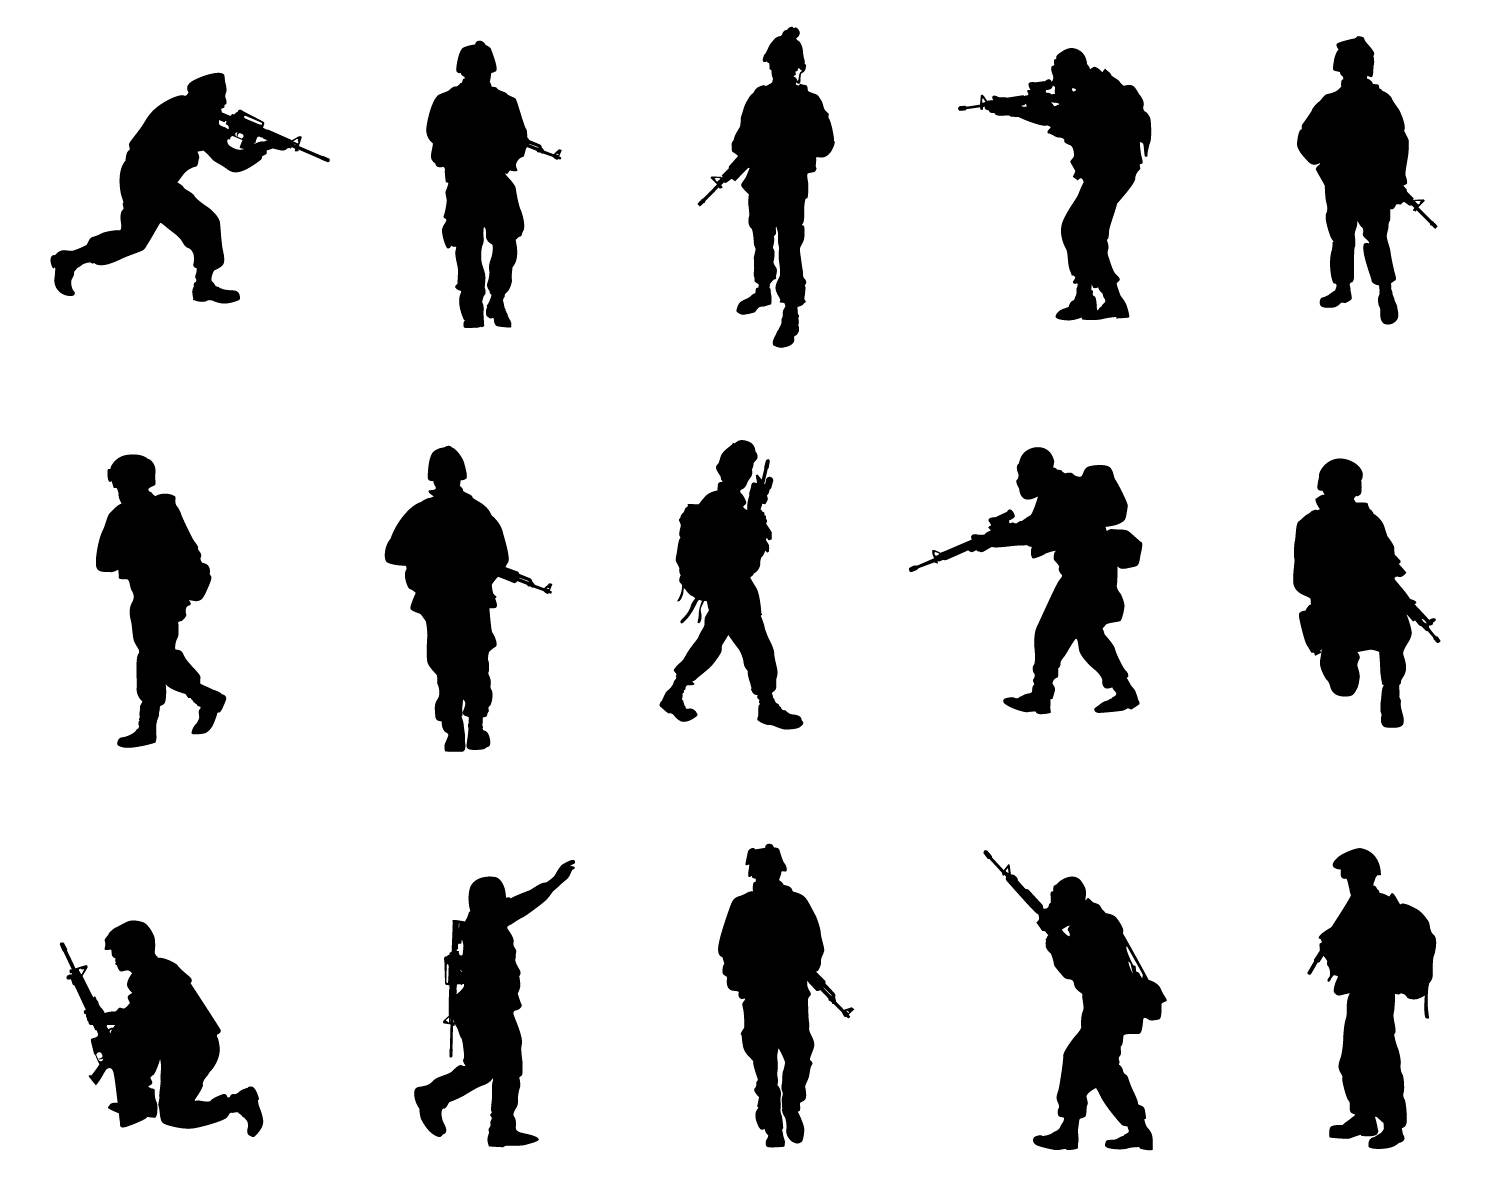 1500x1192 Warrior Soldier Army Military Clipart Silhouette People Svg Png